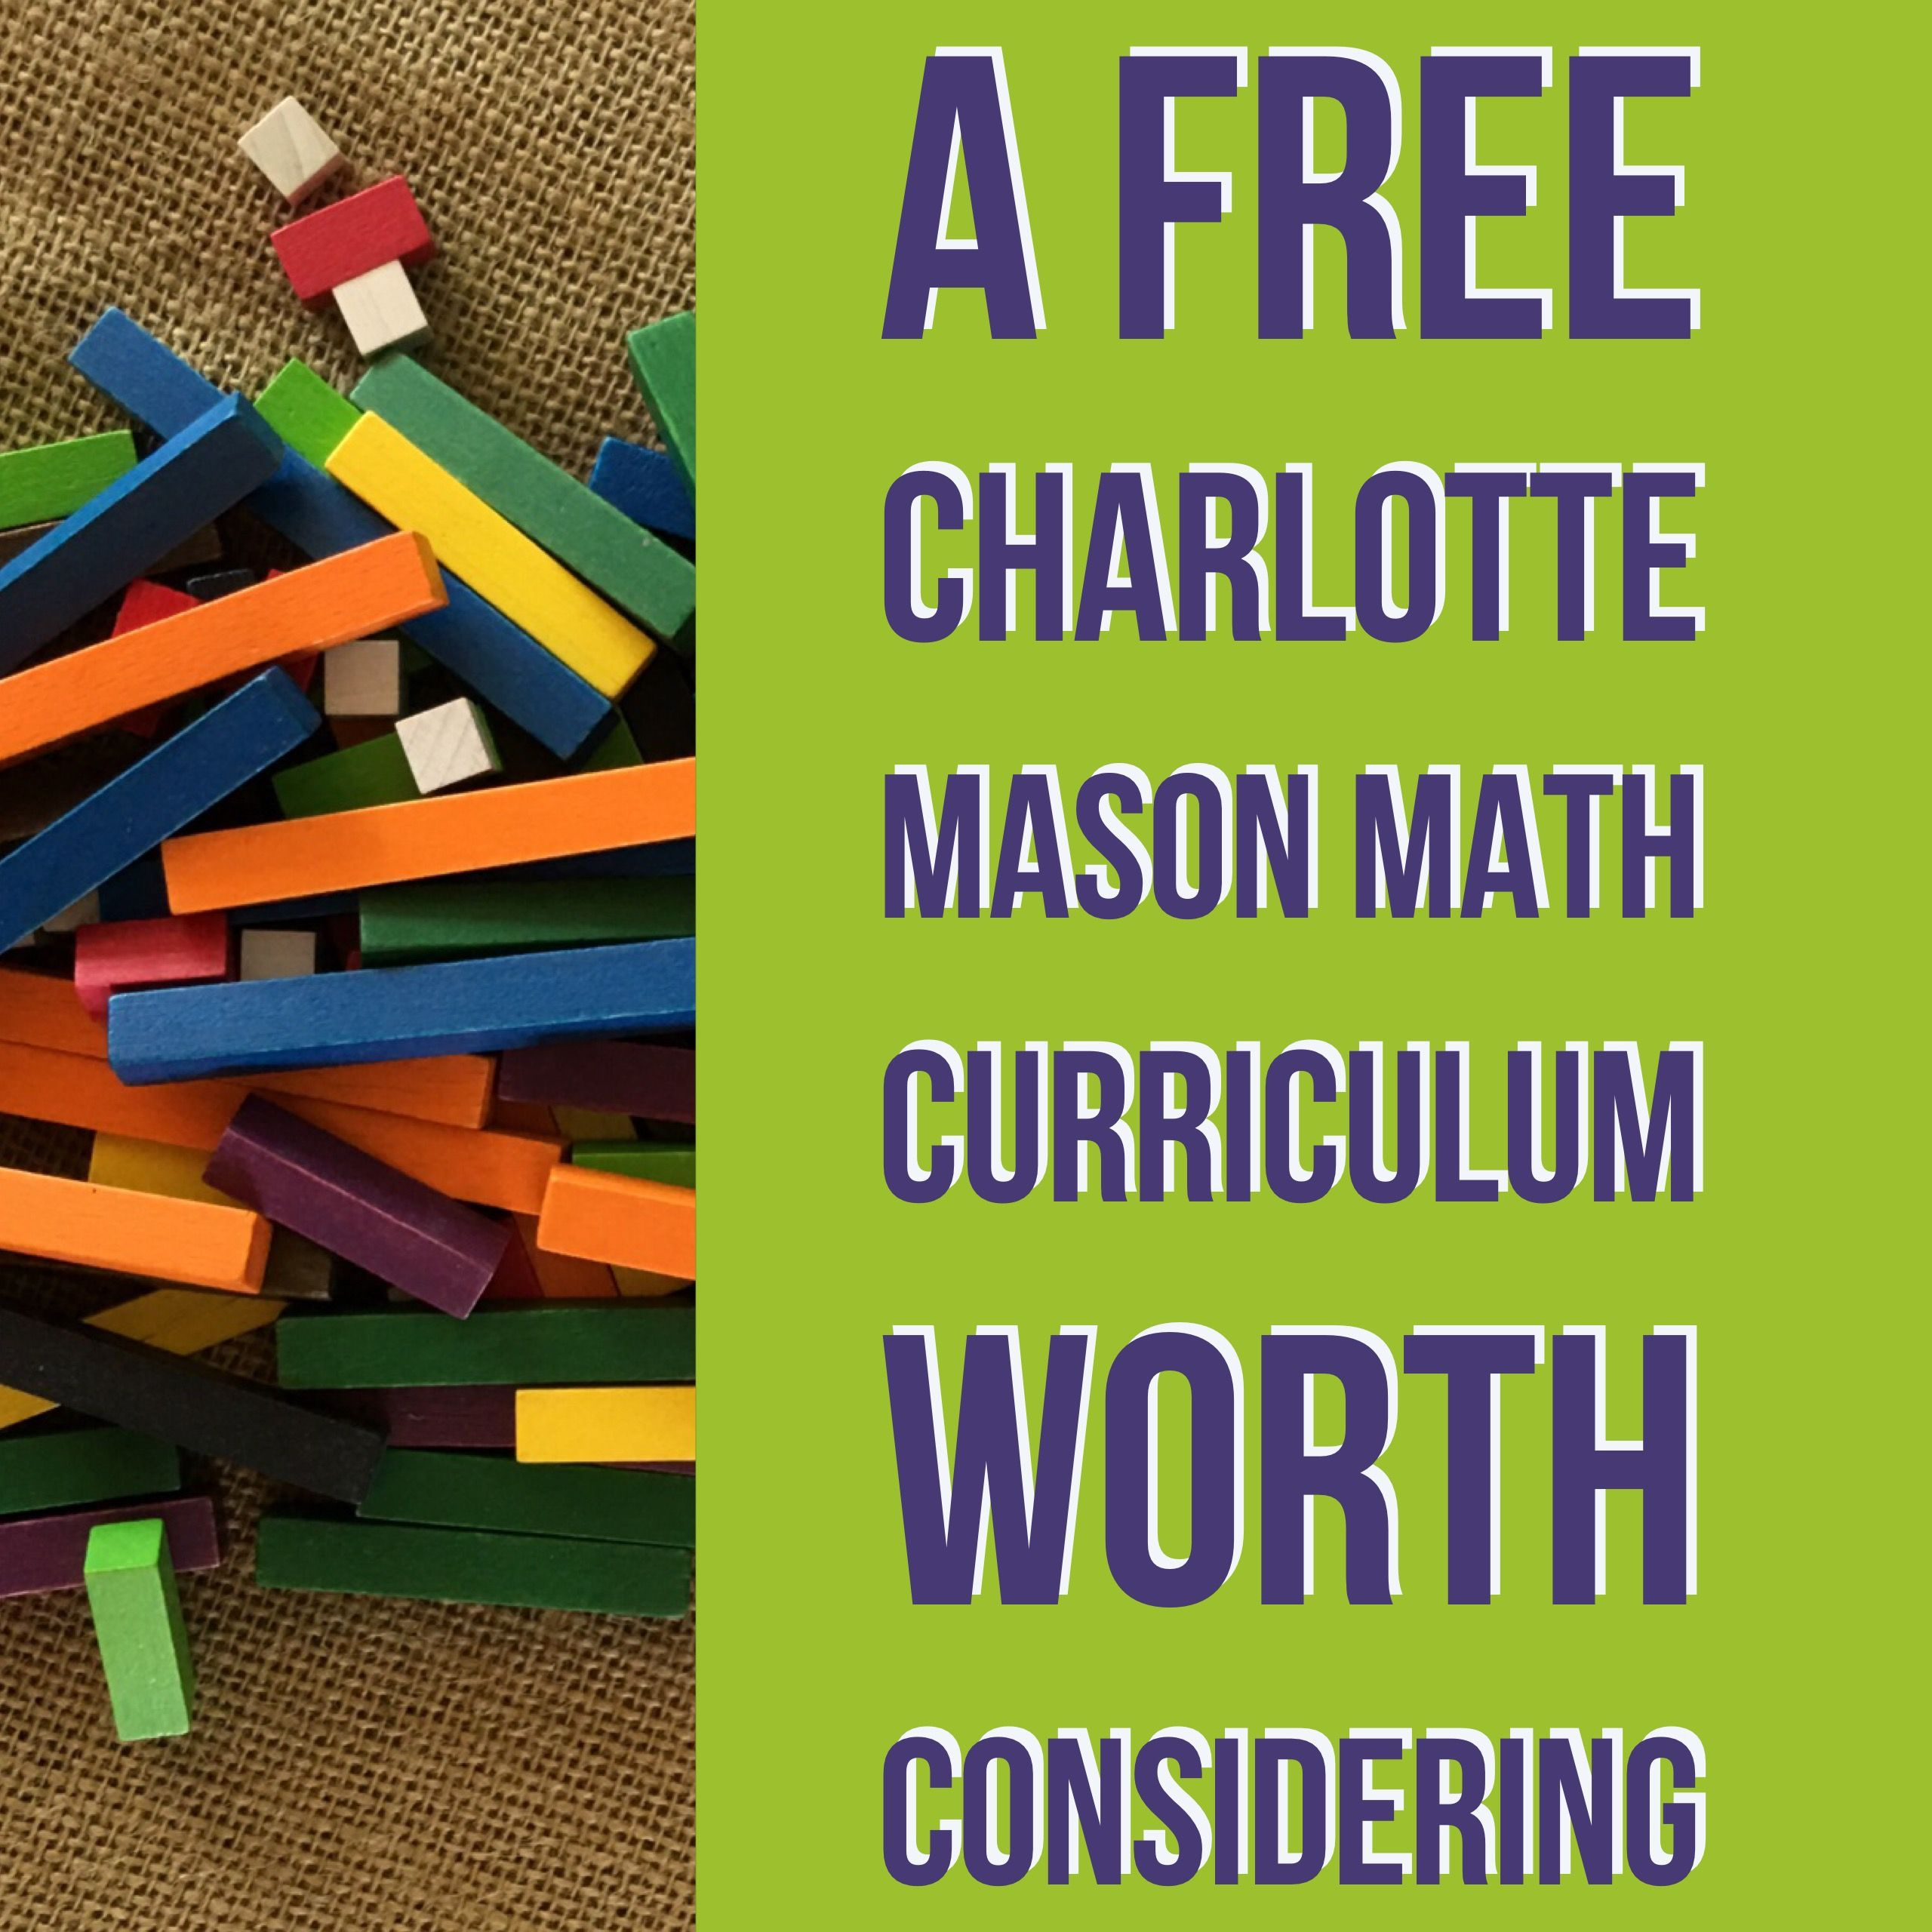 A Free Charlotte Mason Math Curriculum Worth Considering Play